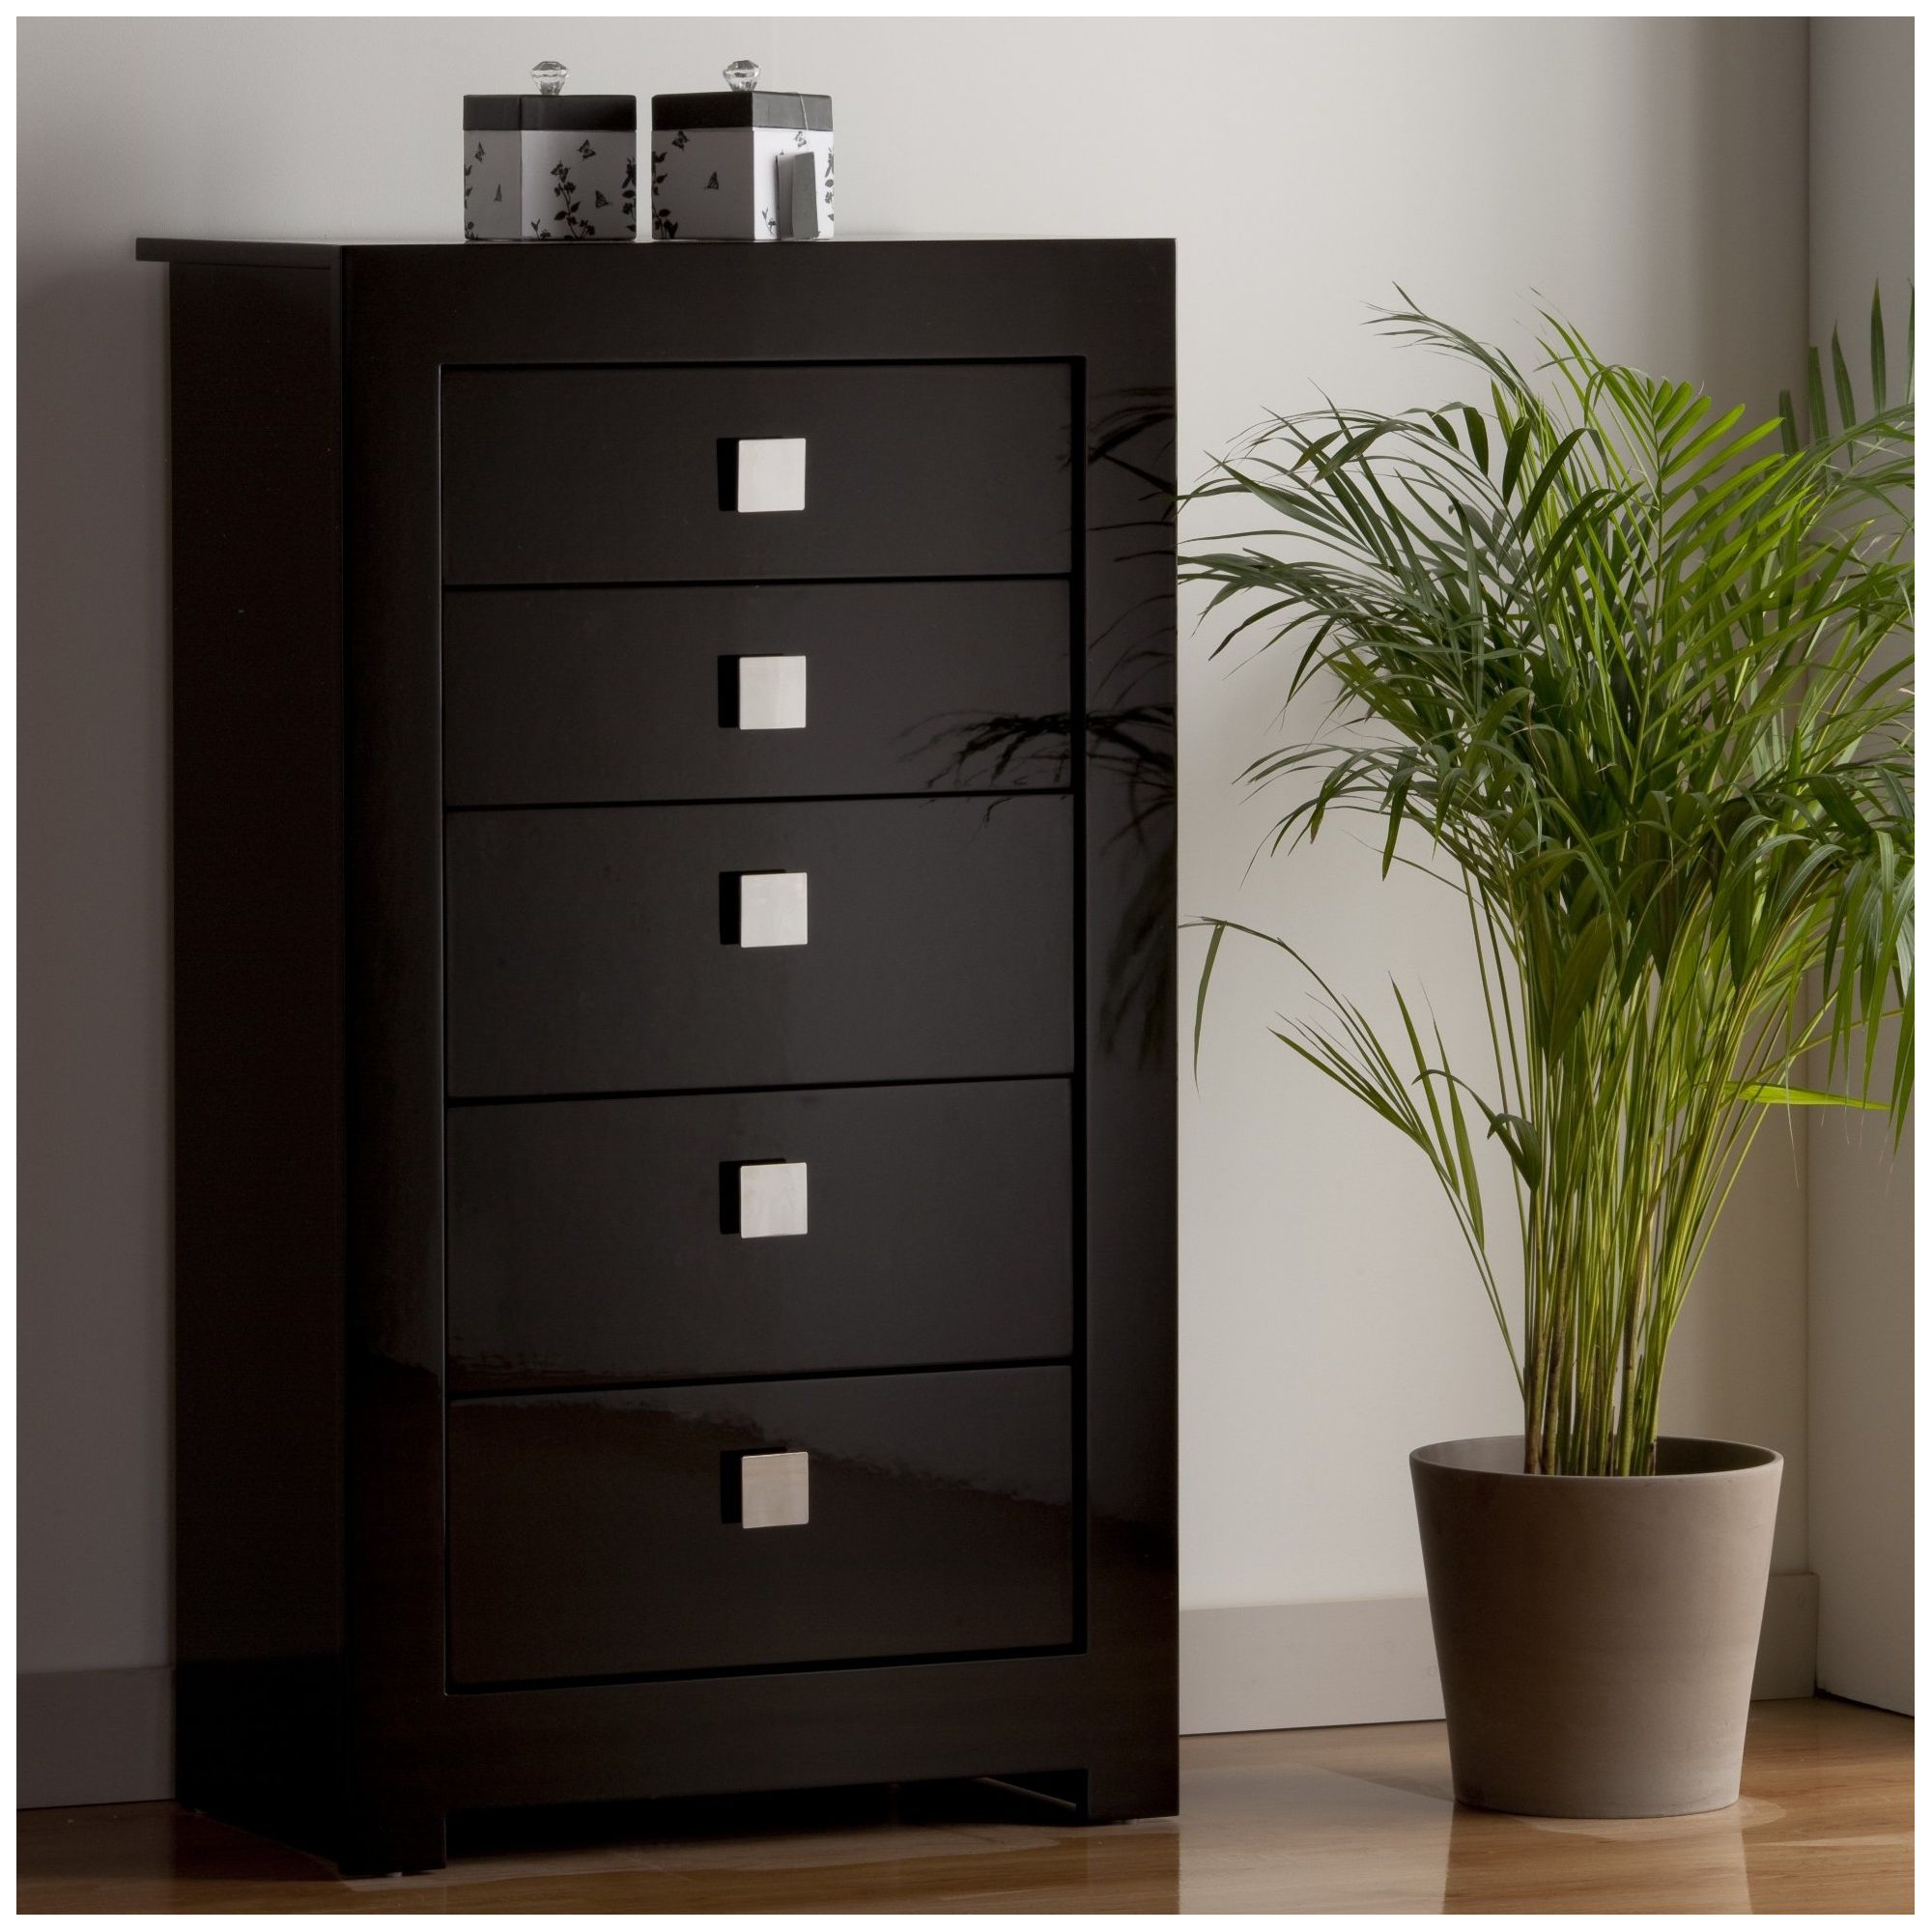 World Furniture Modena Five Drawer Tall Chest of Drawers in Black at Tescos Direct